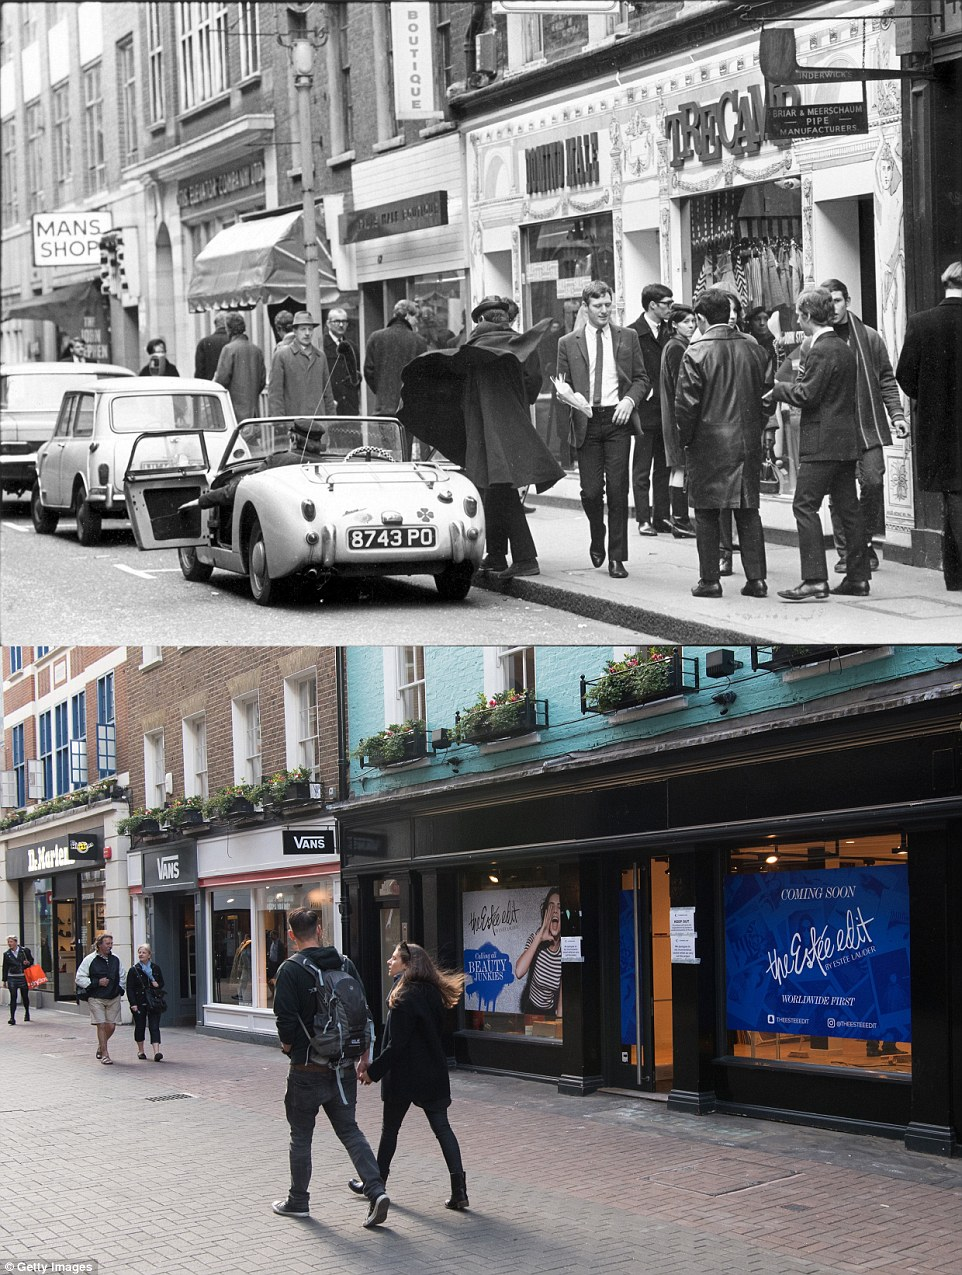 Both of these images show people walking along Carnaby street. In the top image, taken in February 1966, shows a Mod sweeping his cloak around him after getting out of a sports car. As is visible from the bottom image, the road has now been completely pedestrianised